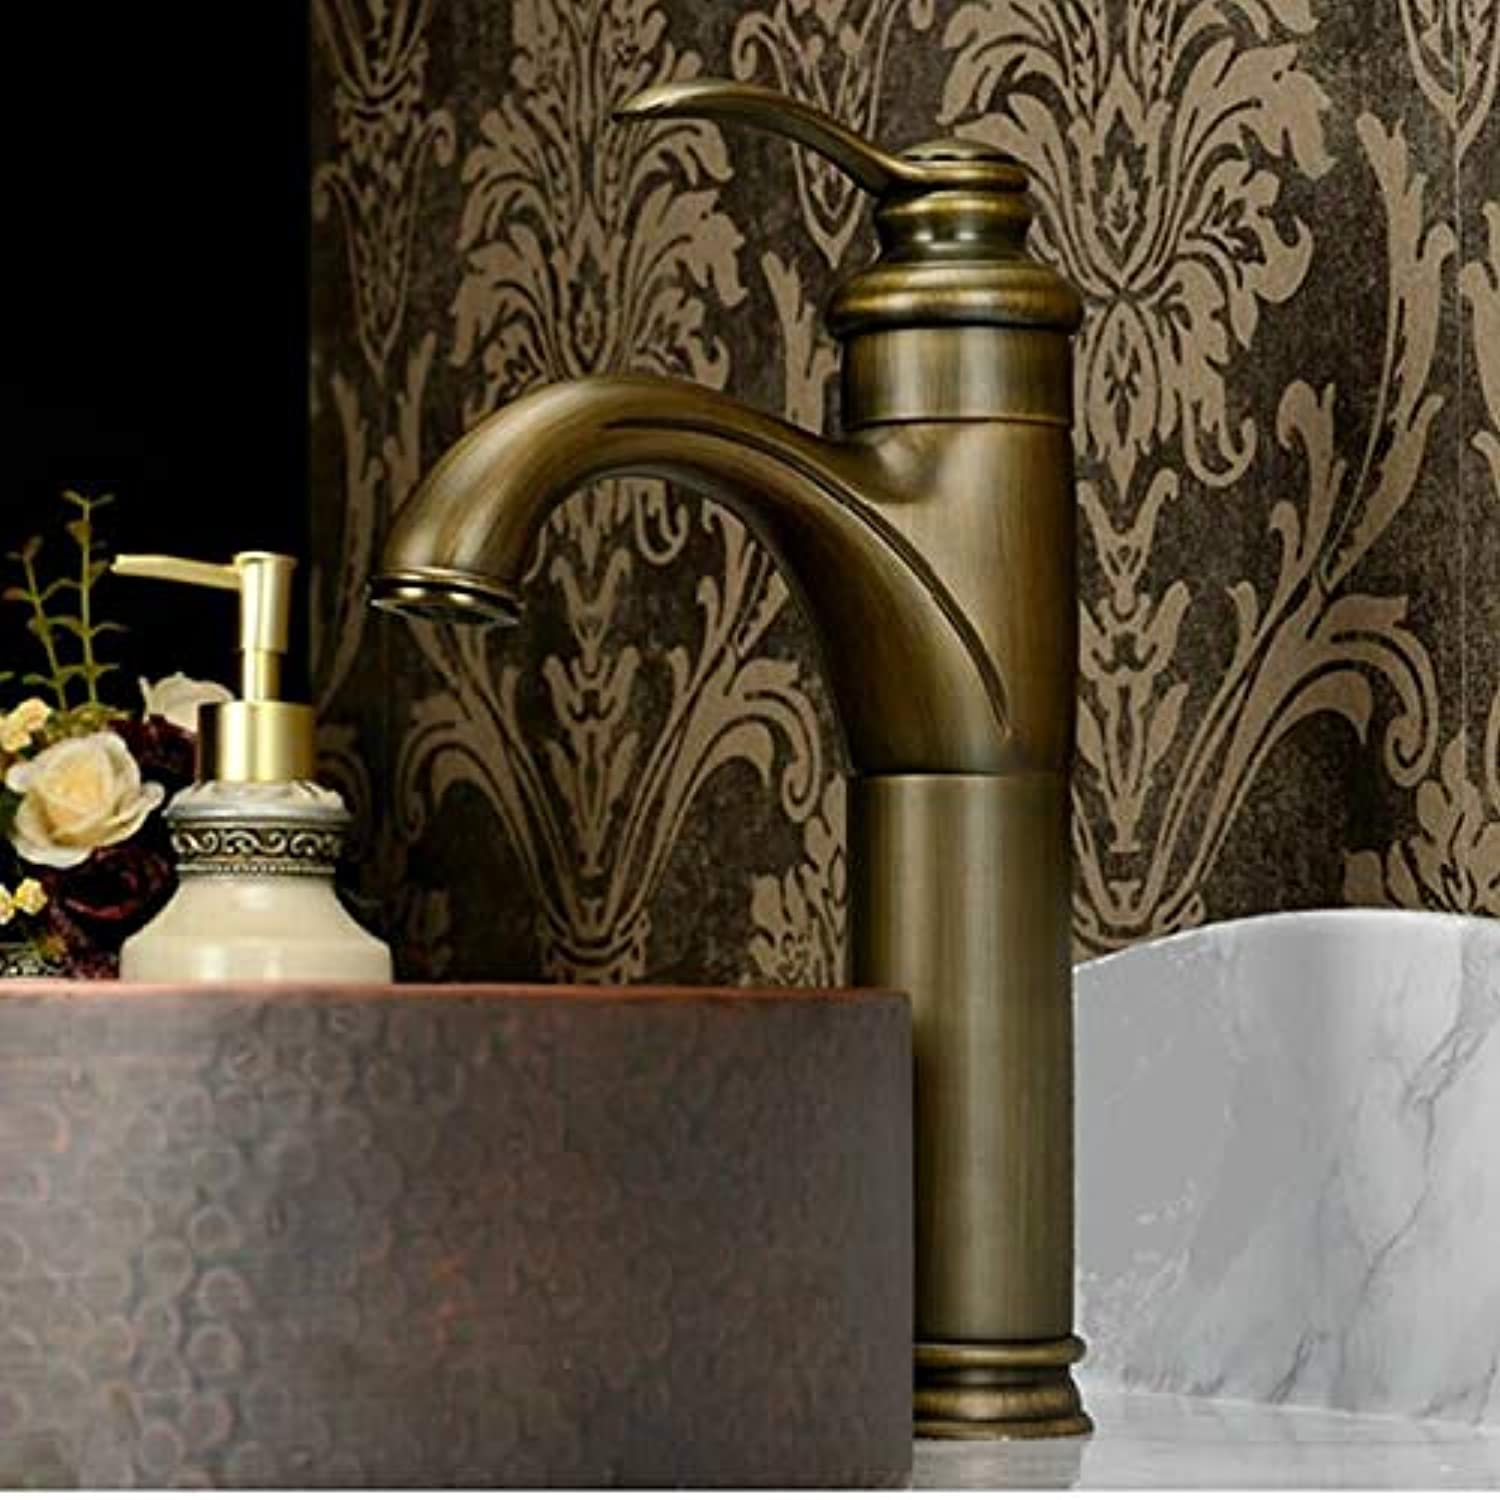 JONTON Taps Taps Taps Copper Hot And Cold Antique Above Counter Basin Faucet European Antique Villa Basin Faucet